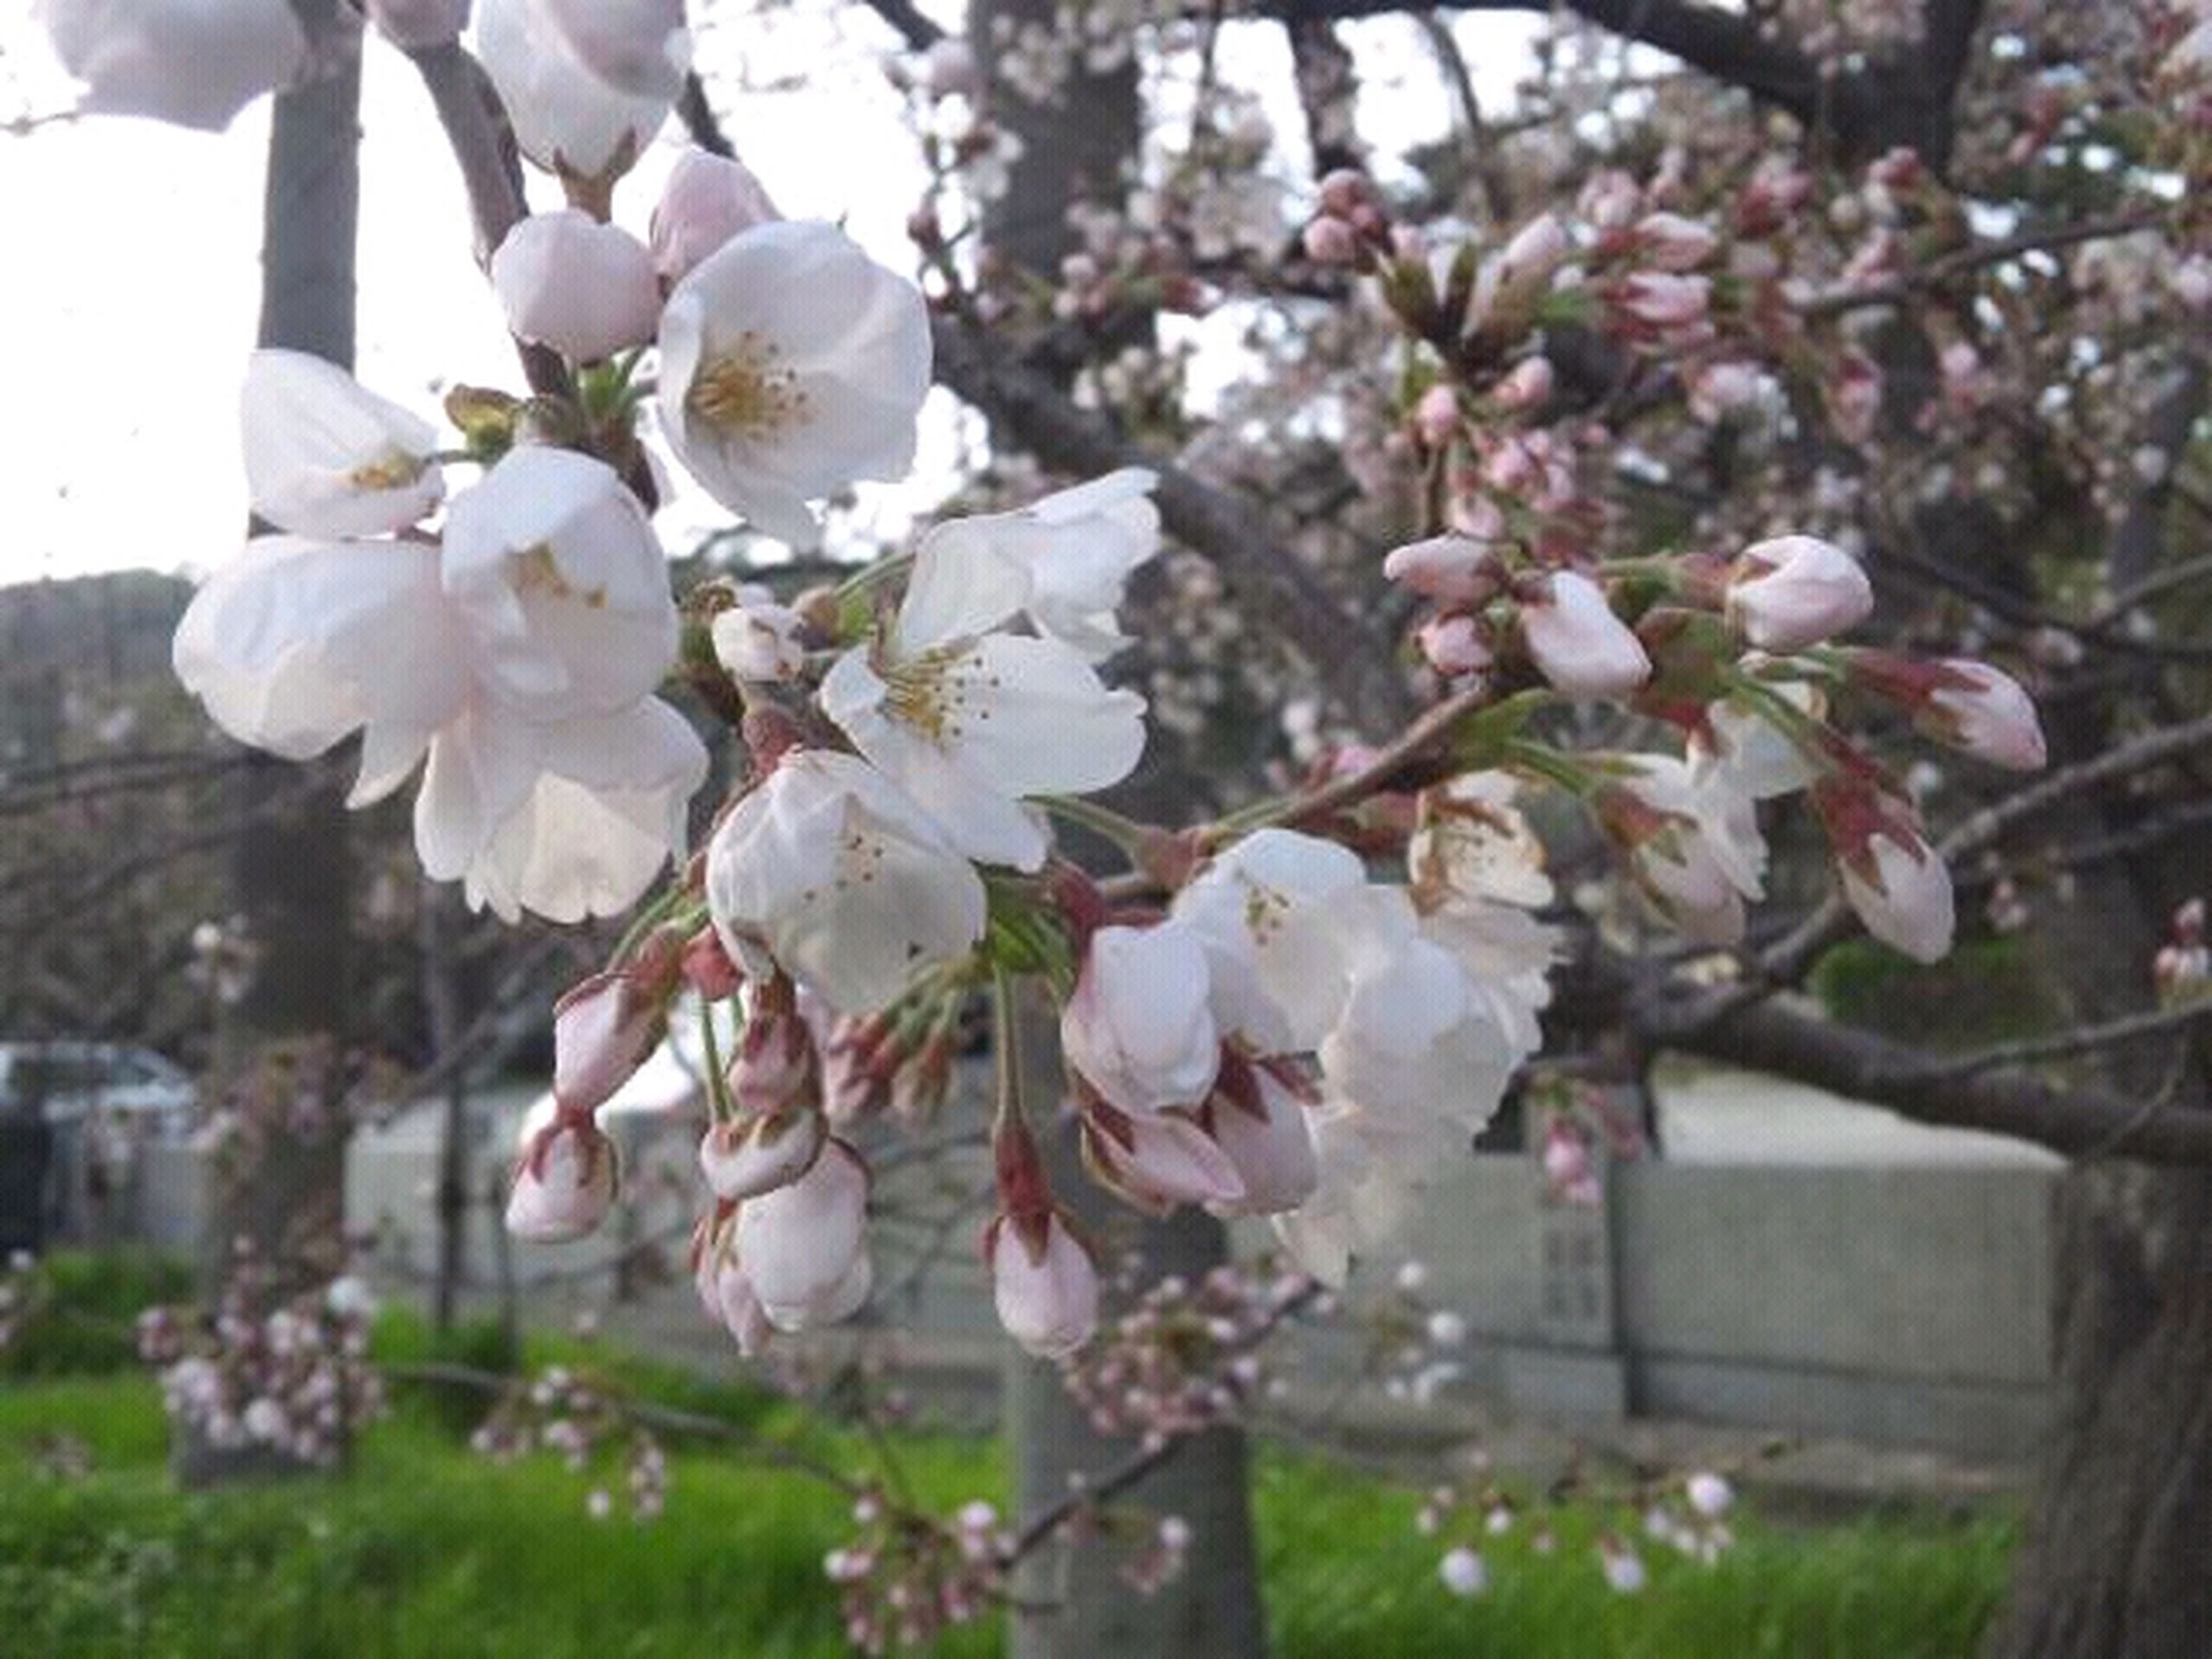 flower, freshness, fragility, growth, cherry blossom, branch, petal, beauty in nature, tree, blossom, cherry tree, nature, focus on foreground, in bloom, blooming, white color, close-up, springtime, fruit tree, apple tree